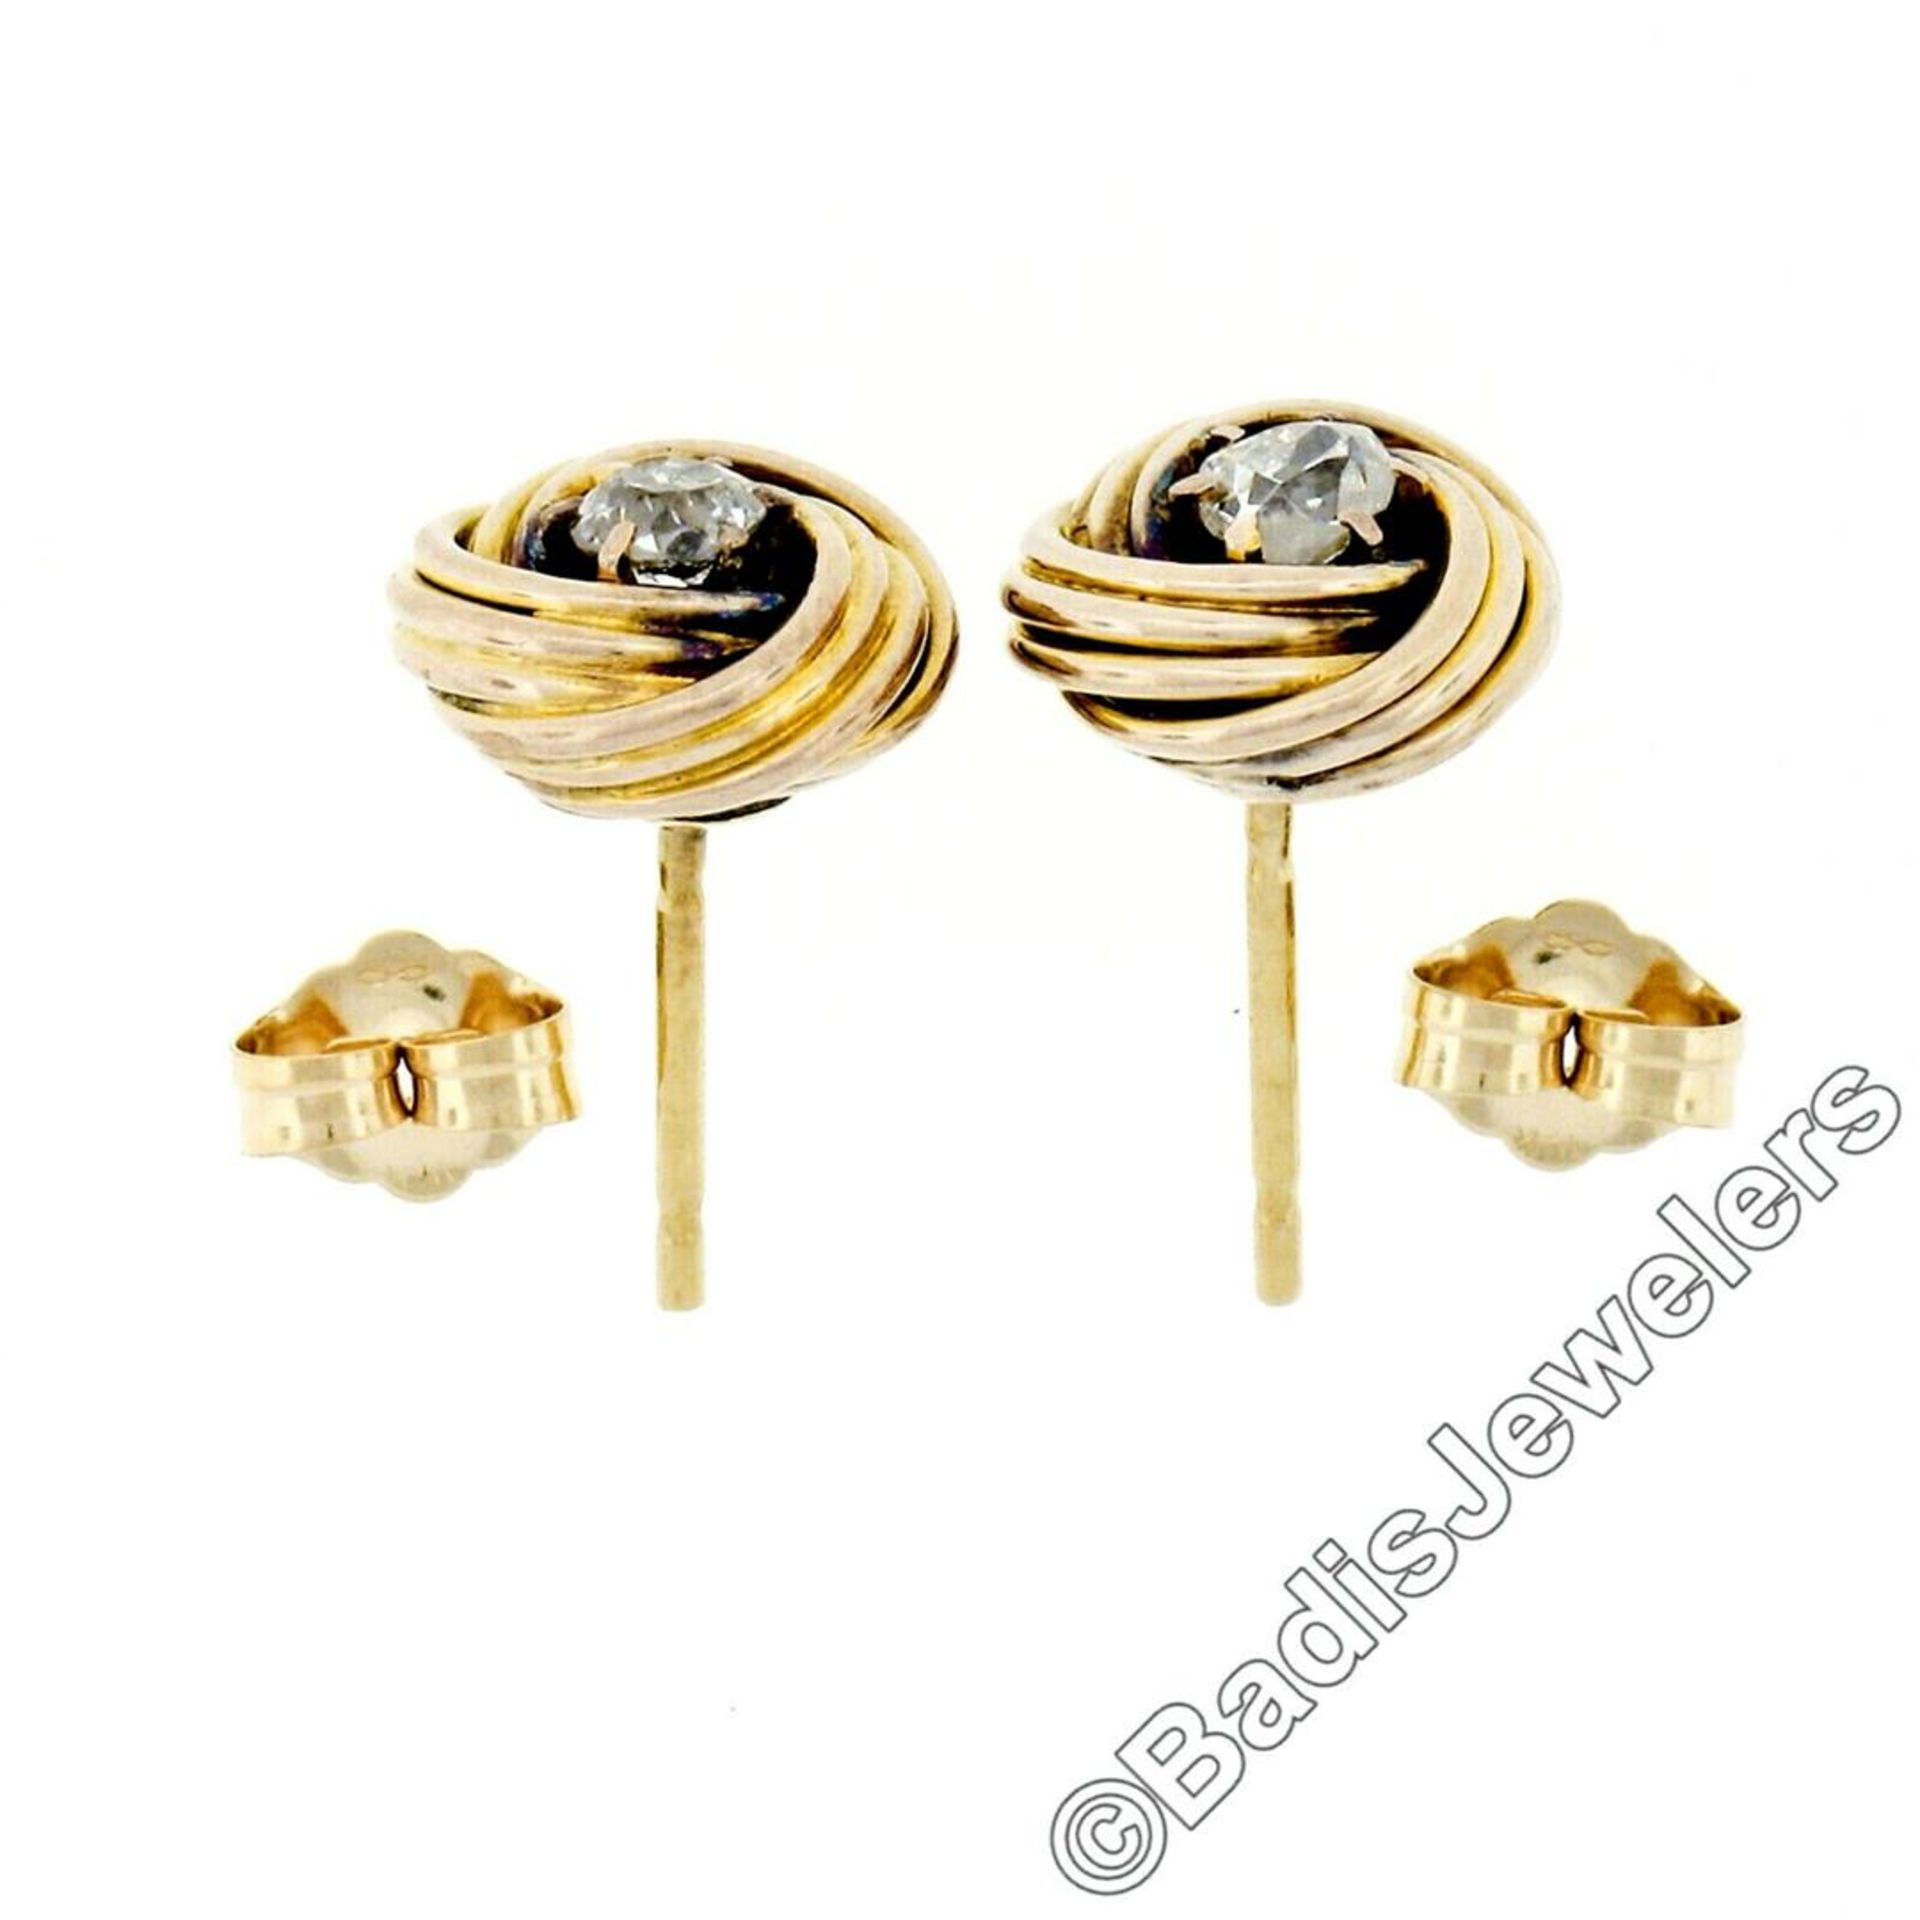 Victorian 14kt Yellow Gold 0.36 ctw Old Mine Cut Diamond Love Knot Stud Earrings - Image 3 of 5